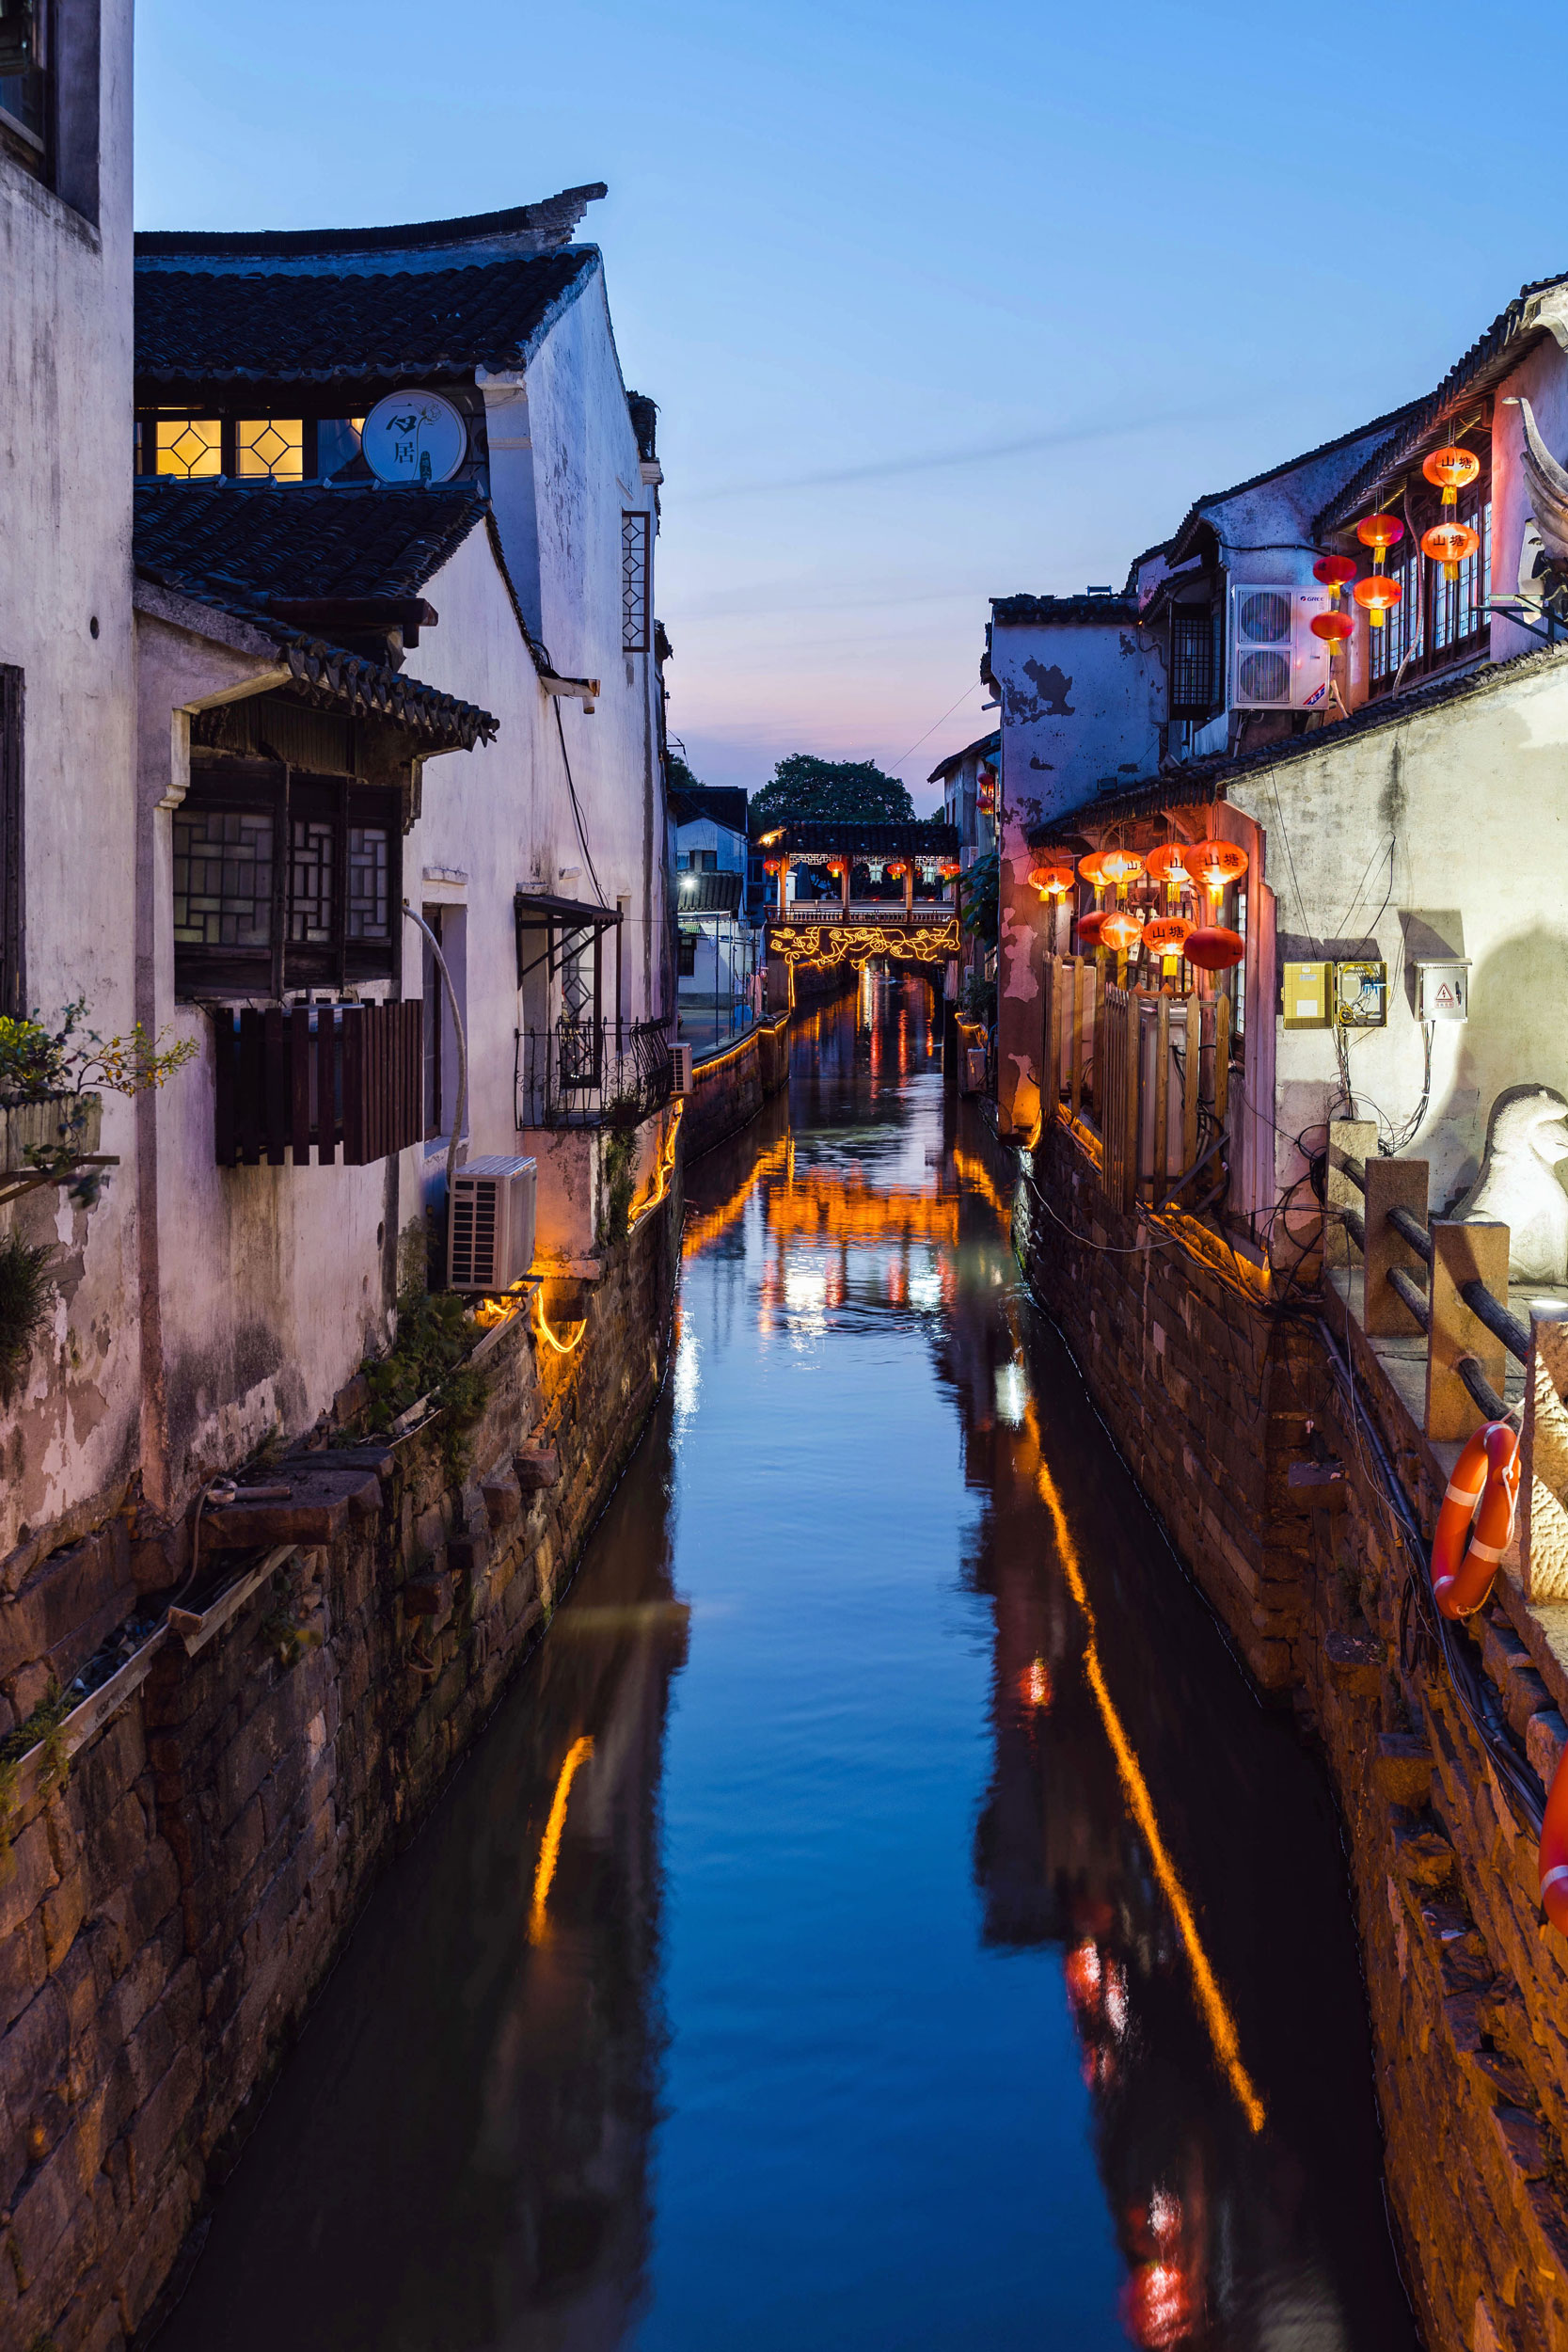 Canal at dusk in the Shantang area of Suzhou